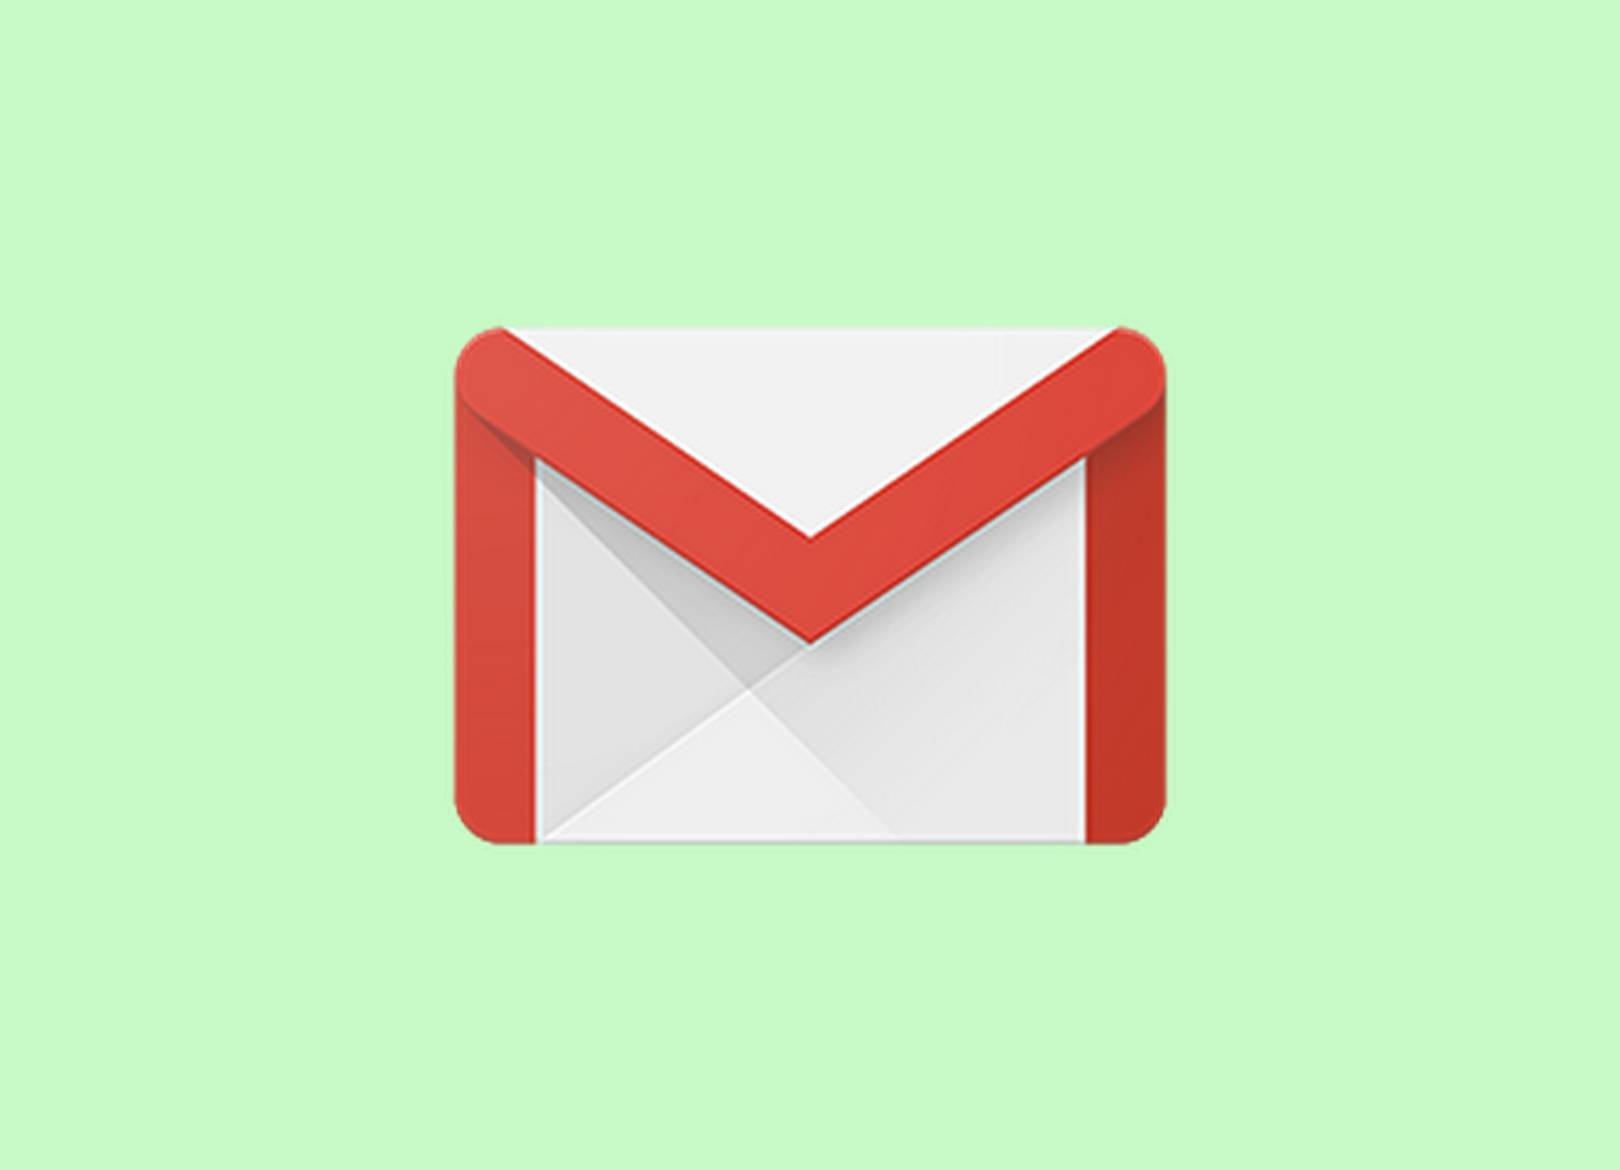 google s belated gmail redesign brings it into the modern email age